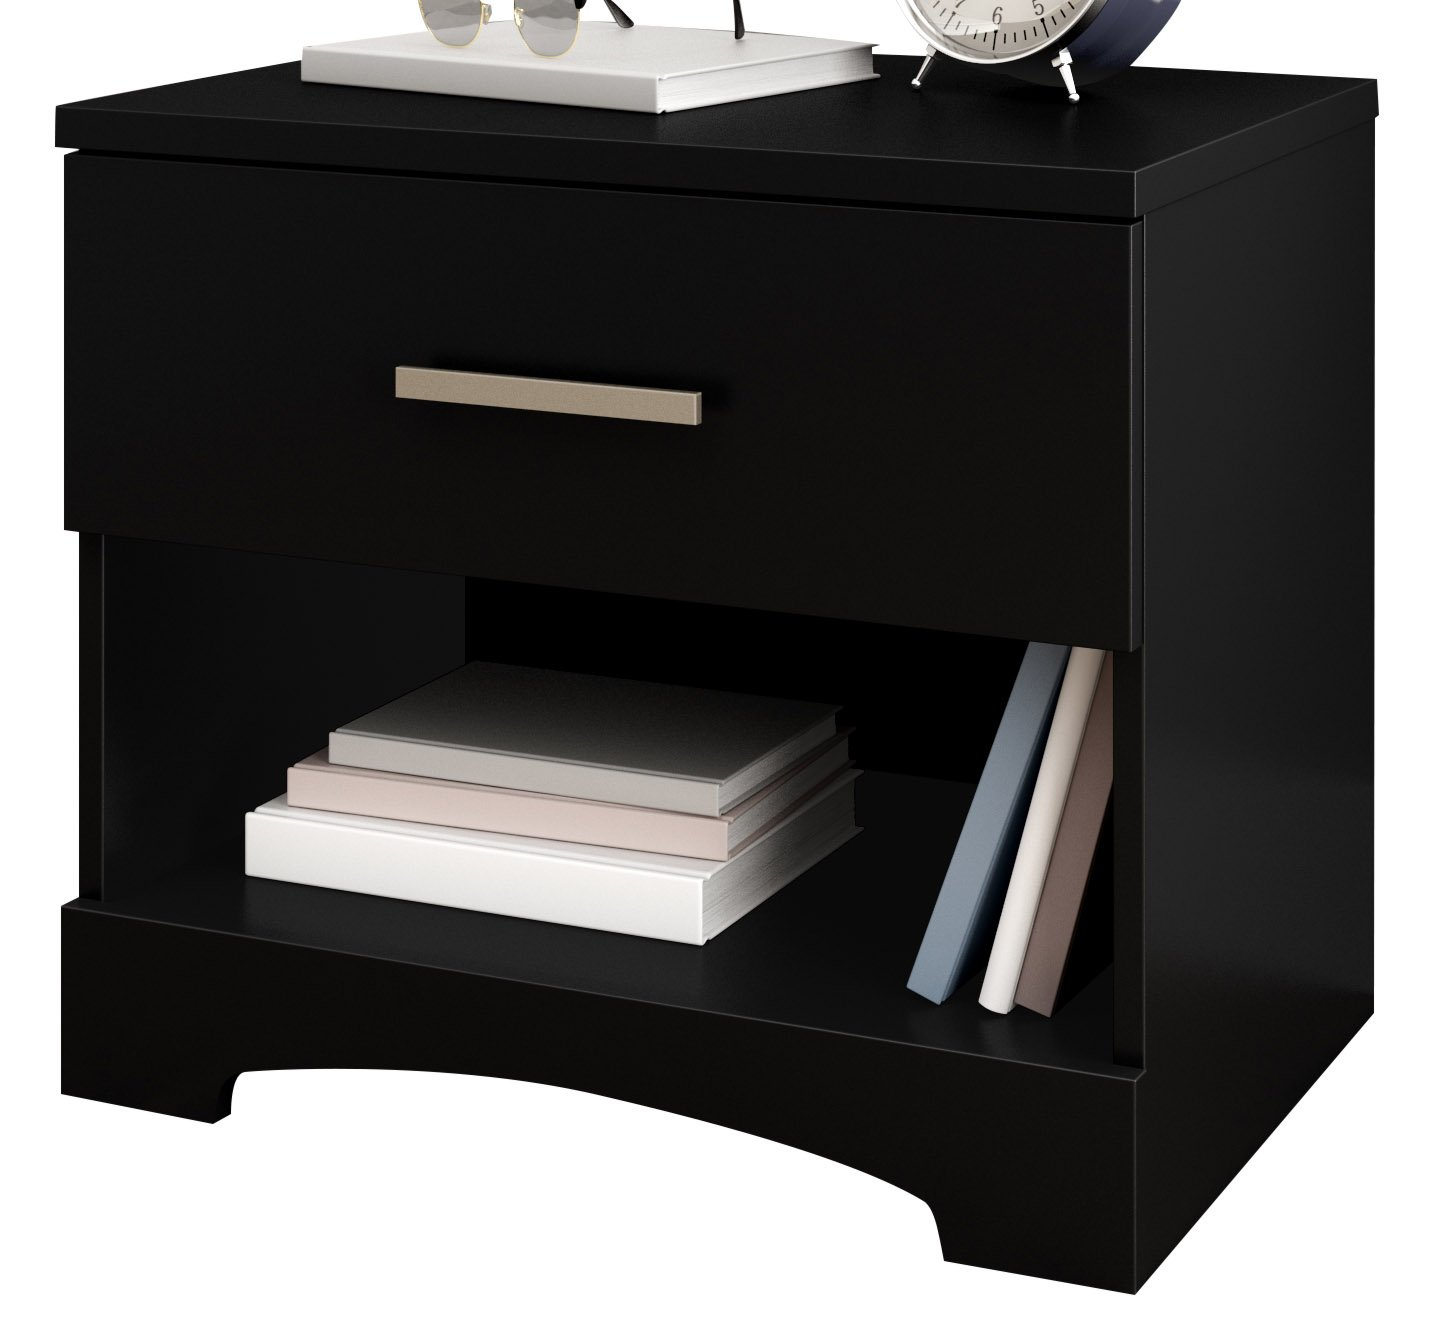 South Shore Gramercy 1-Drawer Nightstand, Pure Black with Metal Handle by South Shore